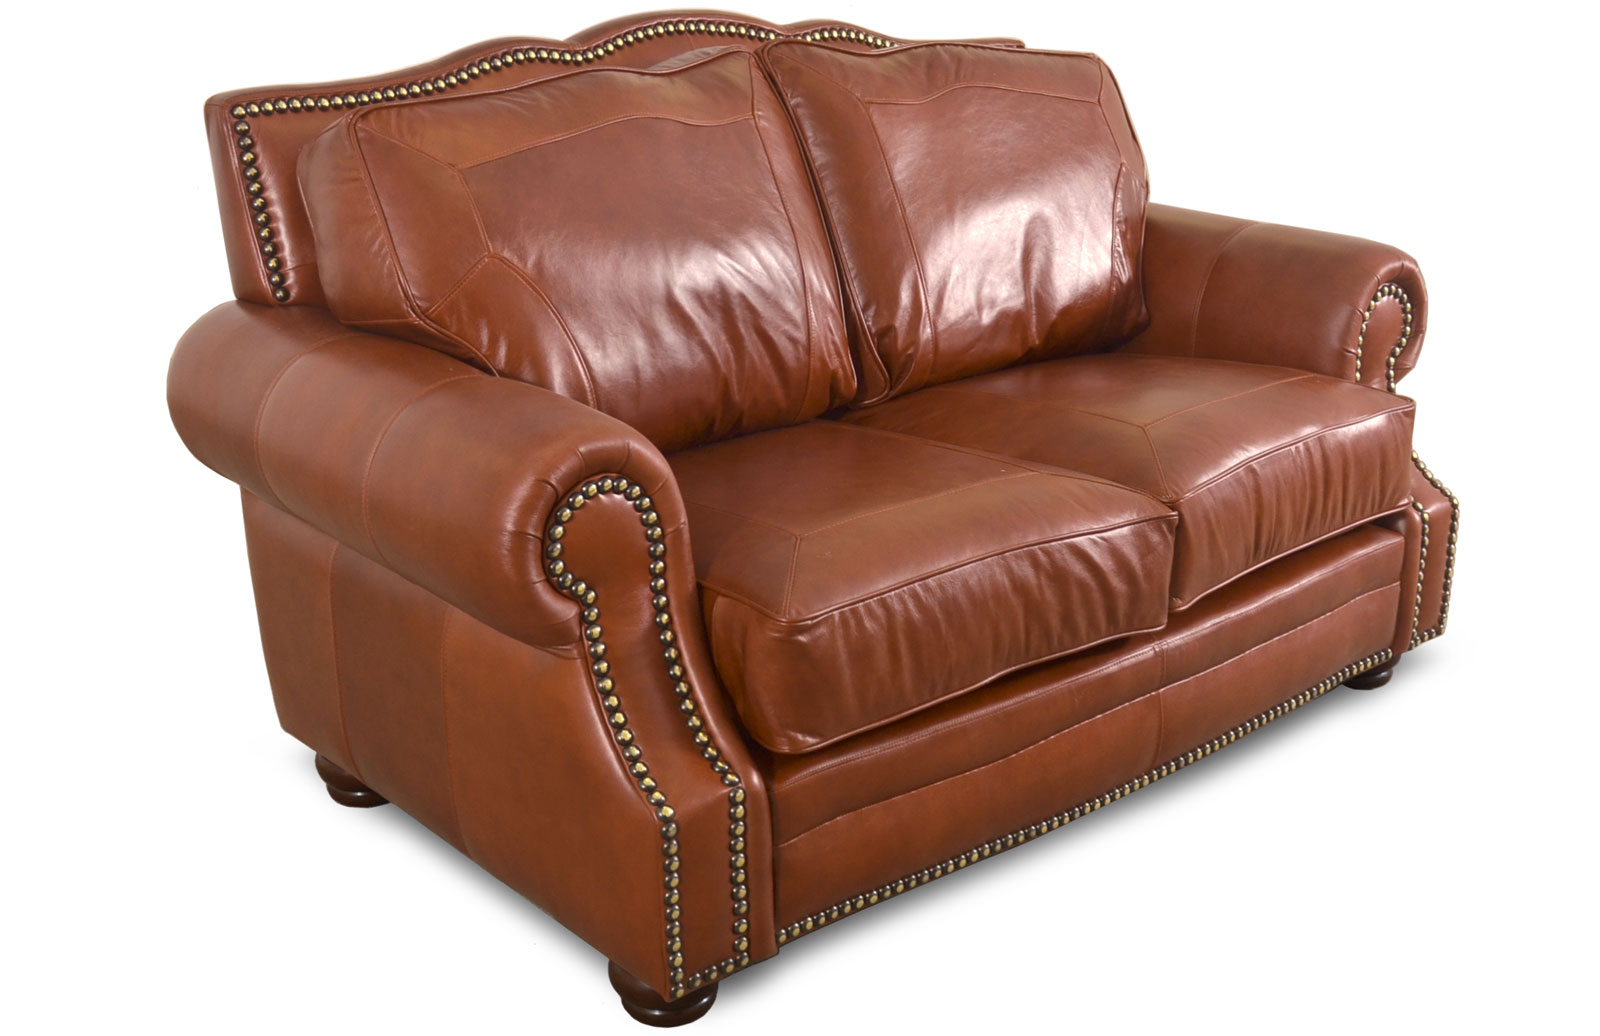 Walton Loveseat C